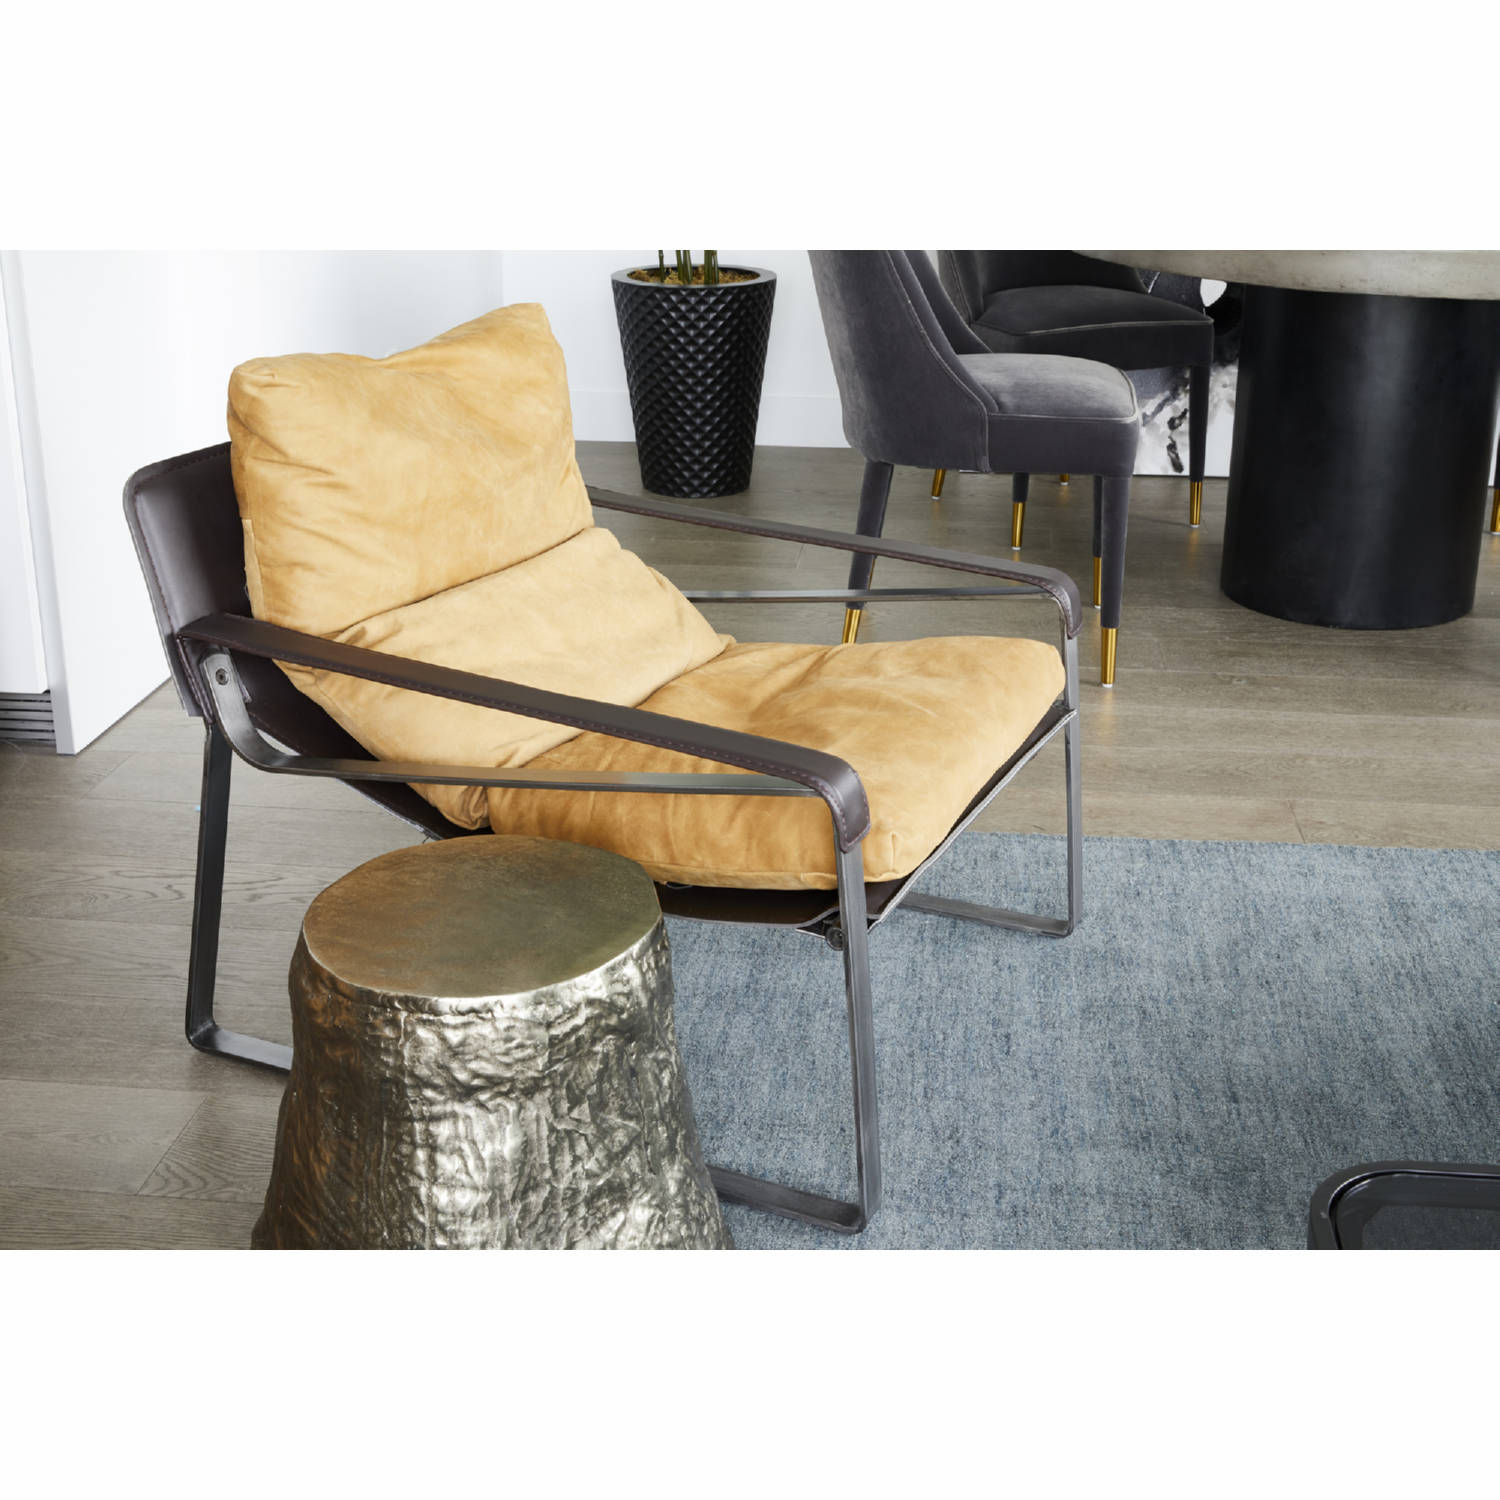 Admirable Connor Club Chair In Distressed Tan Leather By Moes Home Collection Inzonedesignstudio Interior Chair Design Inzonedesignstudiocom